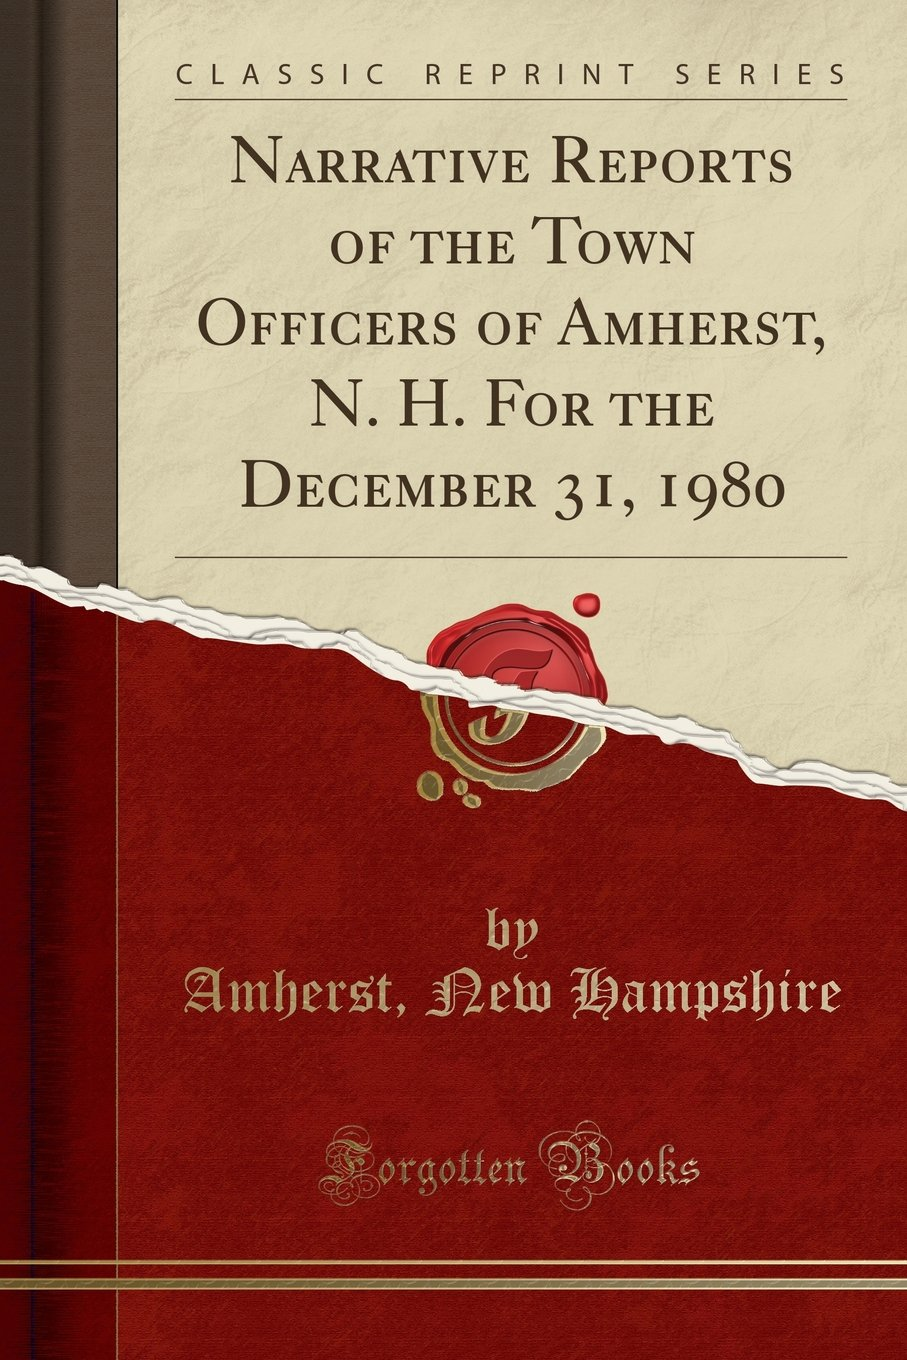 Narrative Reports of the Town Officers of Amherst, N. H. For the December 31, 1980 (Classic Reprint) ebook